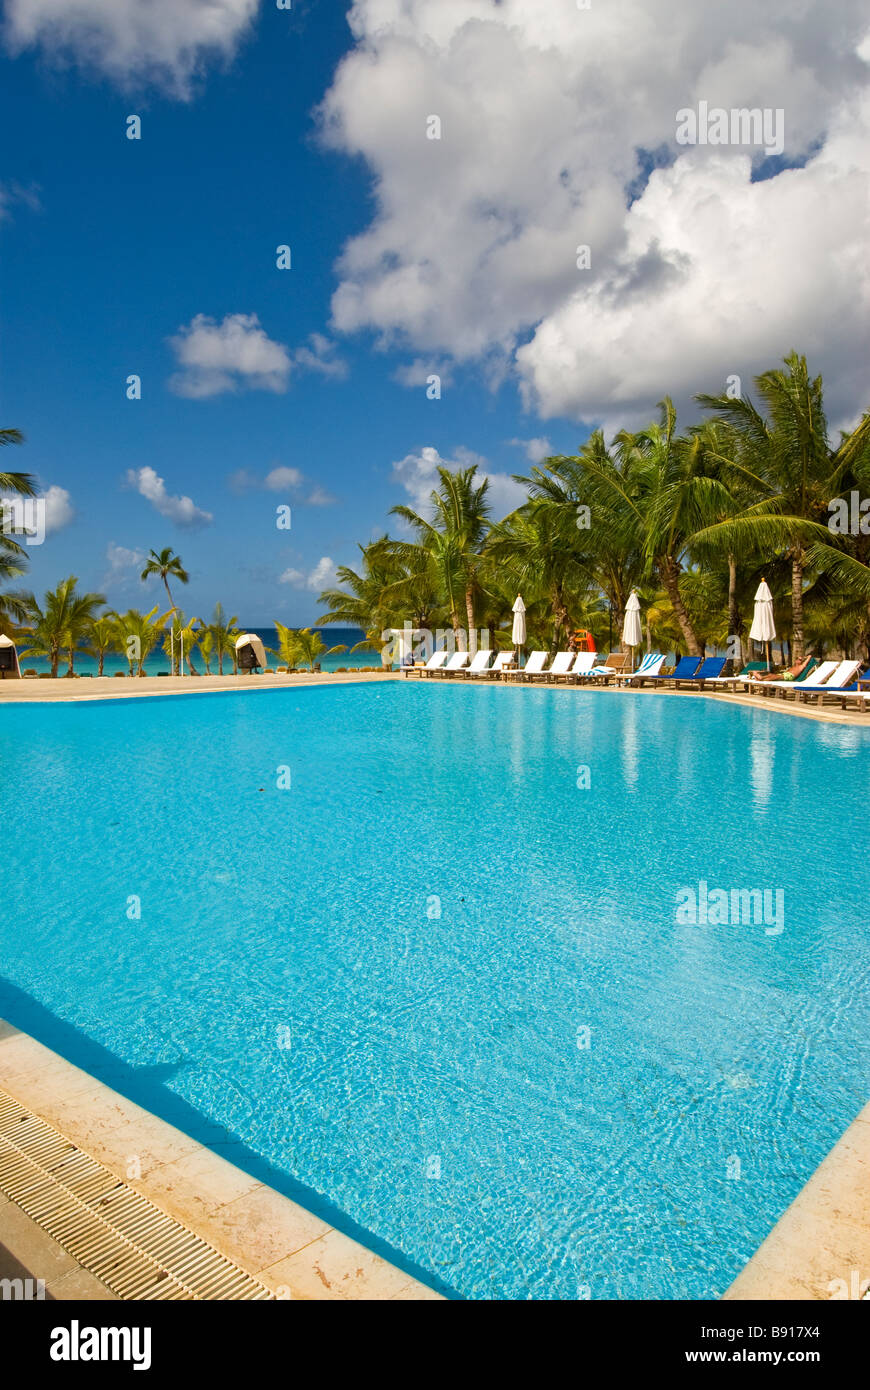 Deserted hotel swimming pool Bayahibe Dominican Republic Viva Wyndham Dominicus Palace all-inclusive resort with - Stock Image